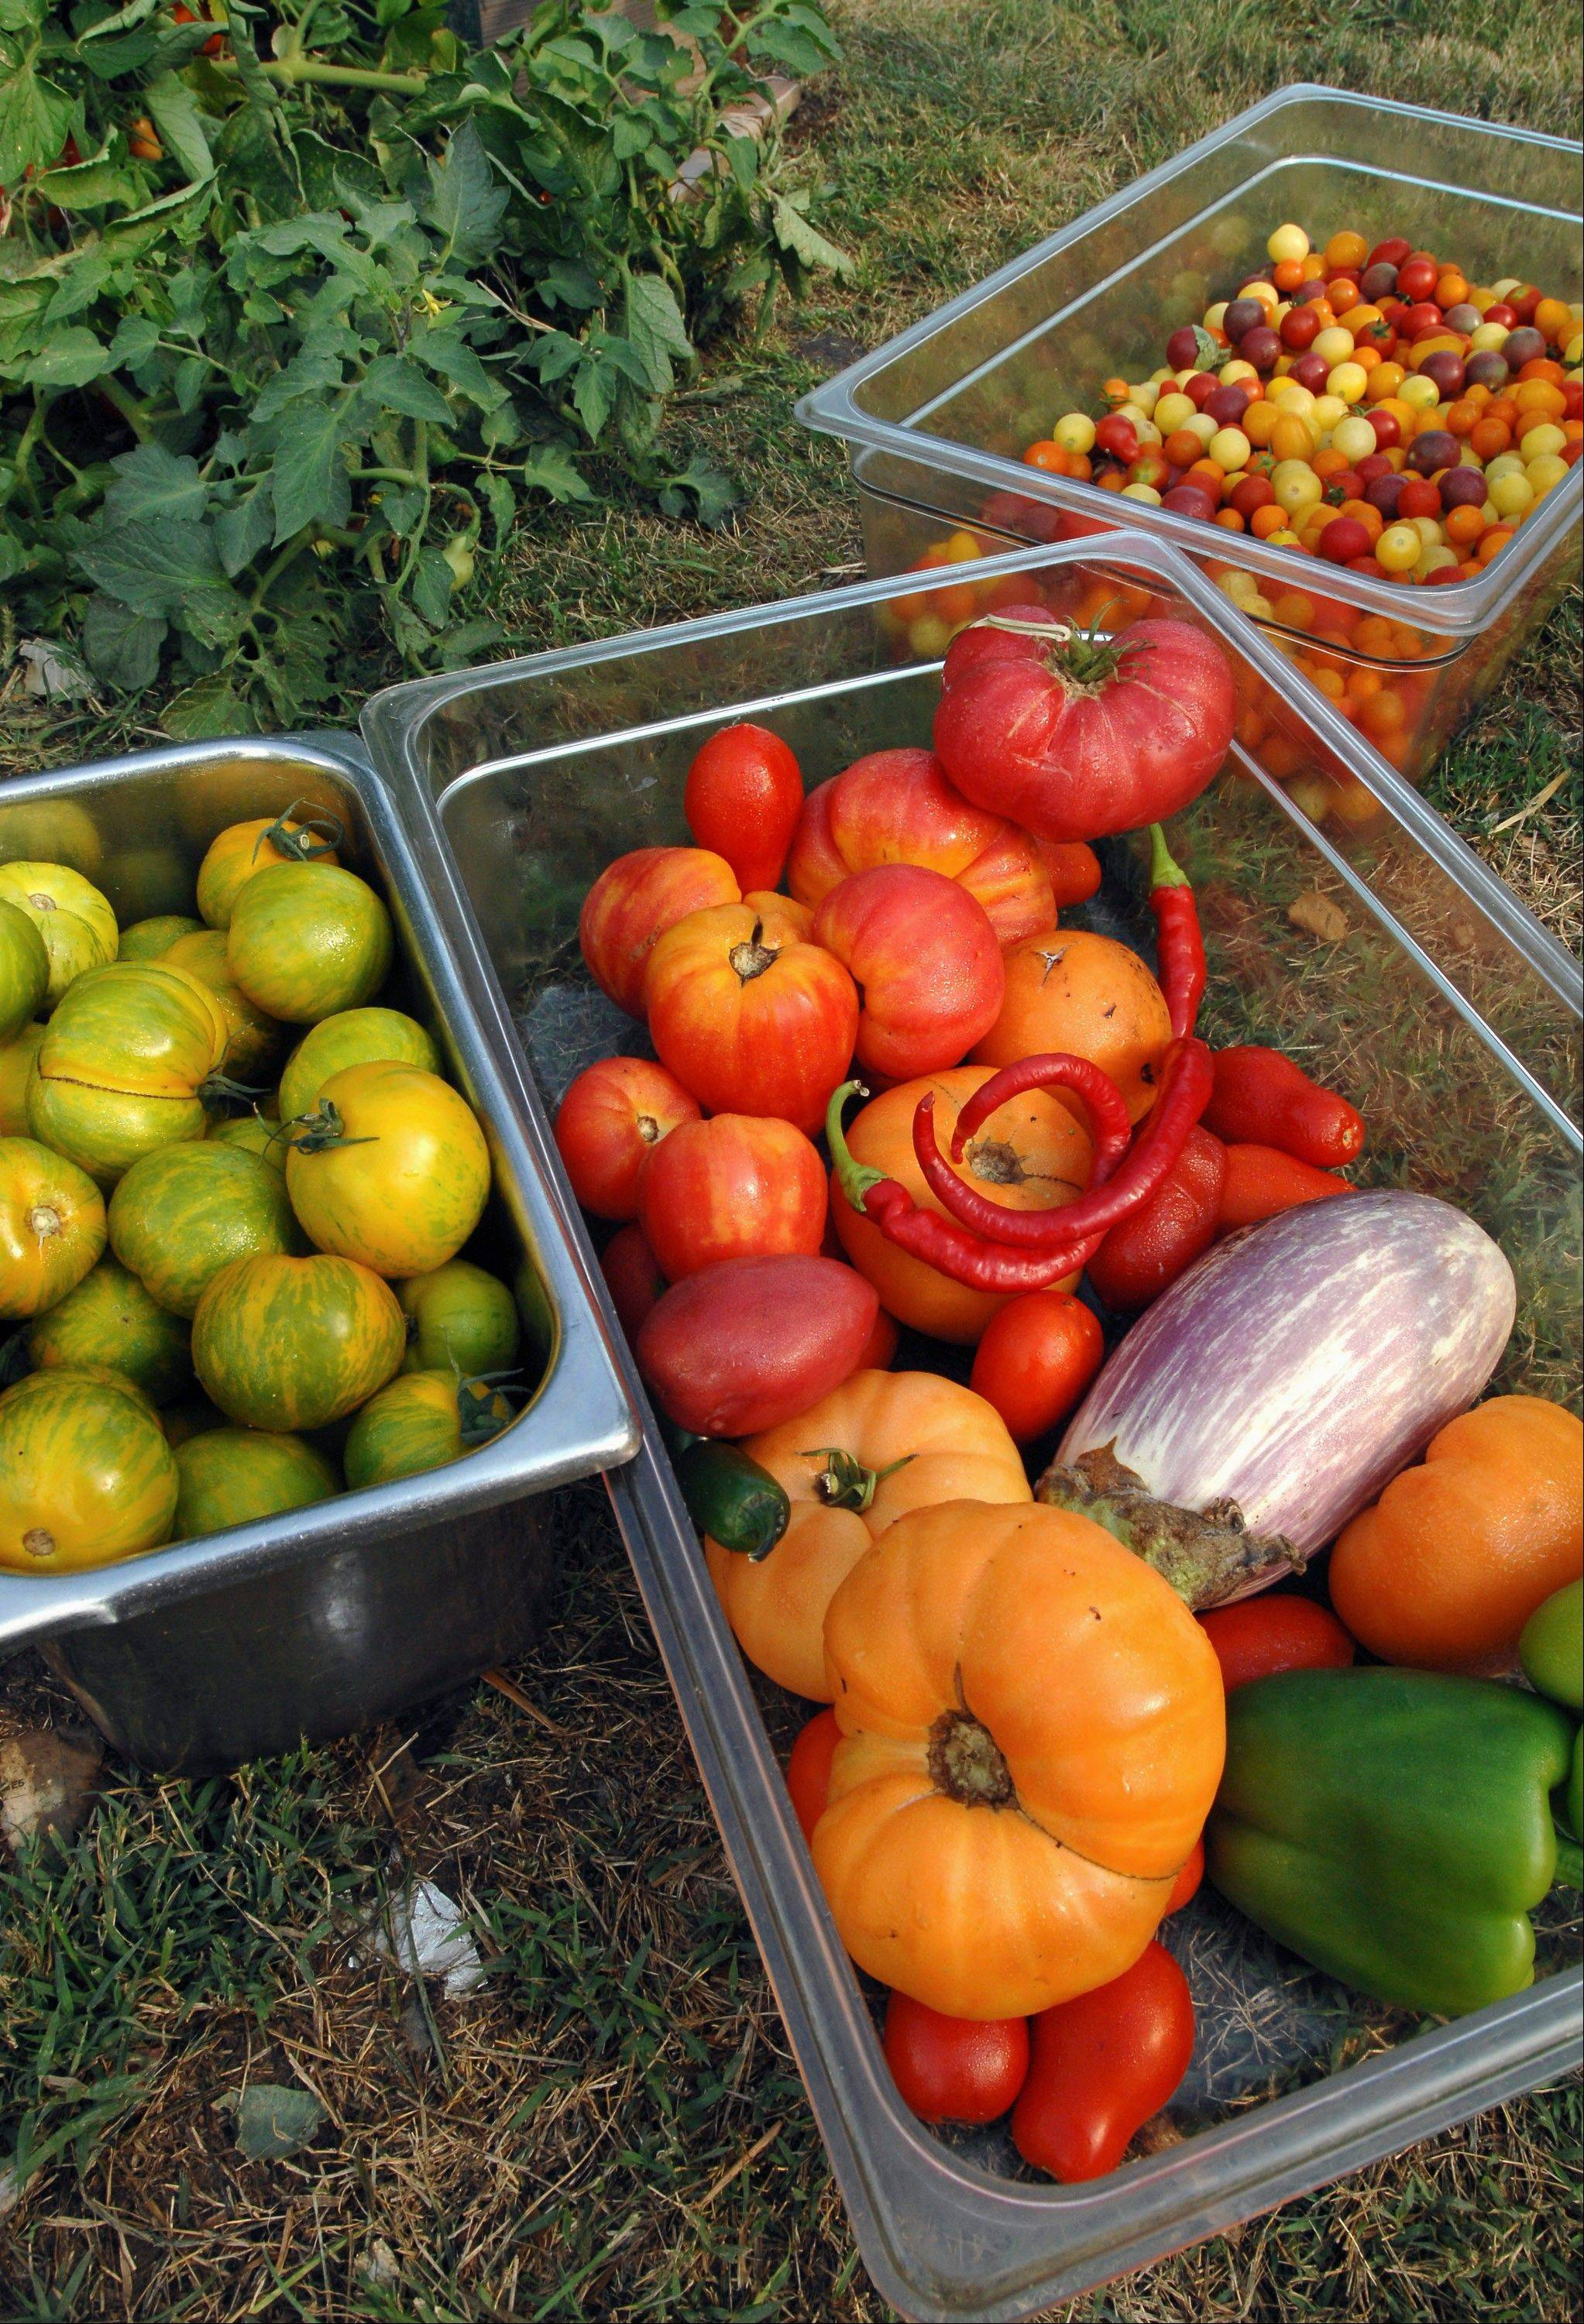 A sampling of organic vegetables, including the green heirloom tomatoes at left, are seen at the garden created by Michael Hobin and Ryan Childers behind Childers Eatery in Peoria. The pair did a lot of research before purchasing heirloom seeds online.